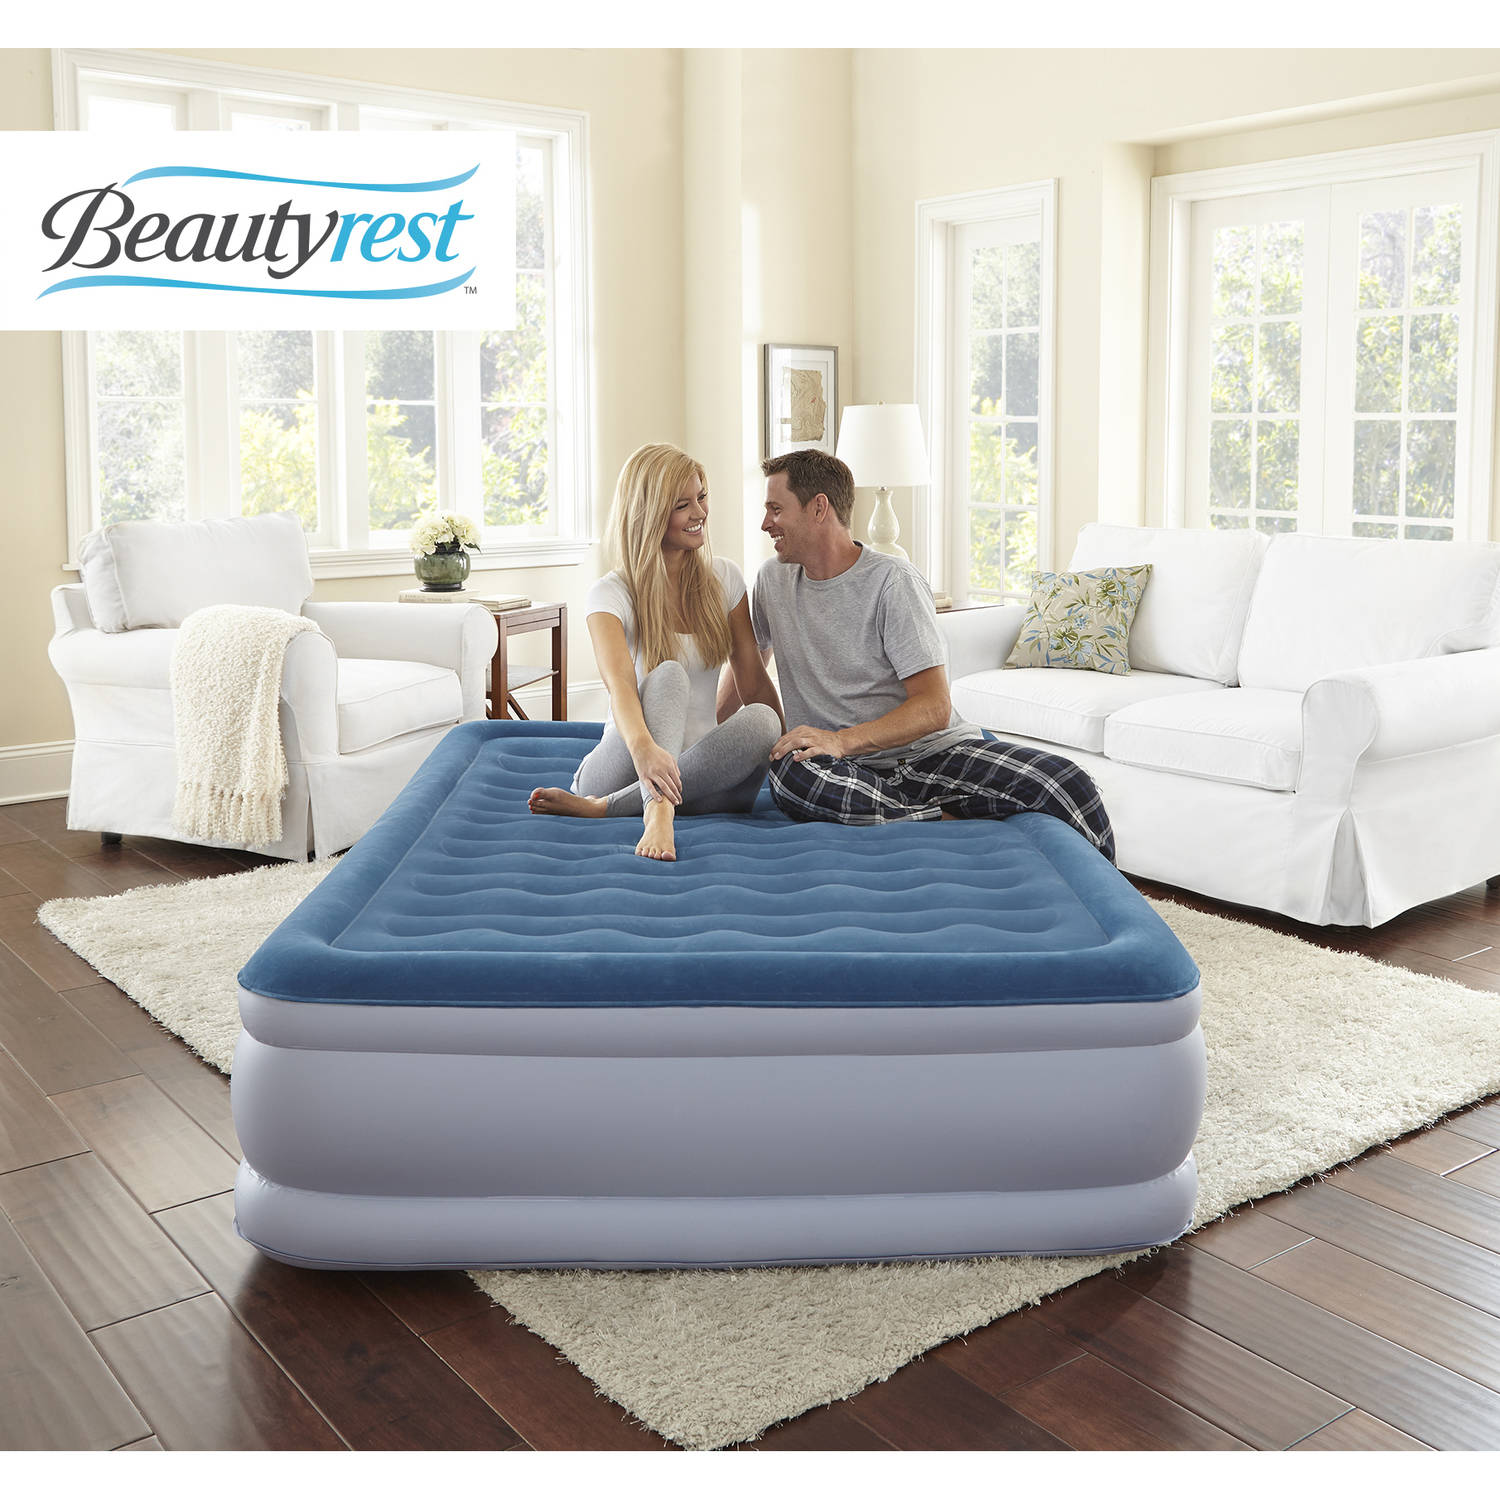 Beautyrest Queen Mattress | Simmons Beautyrest Baby Mattress | Simmons Beautyrest Mattress